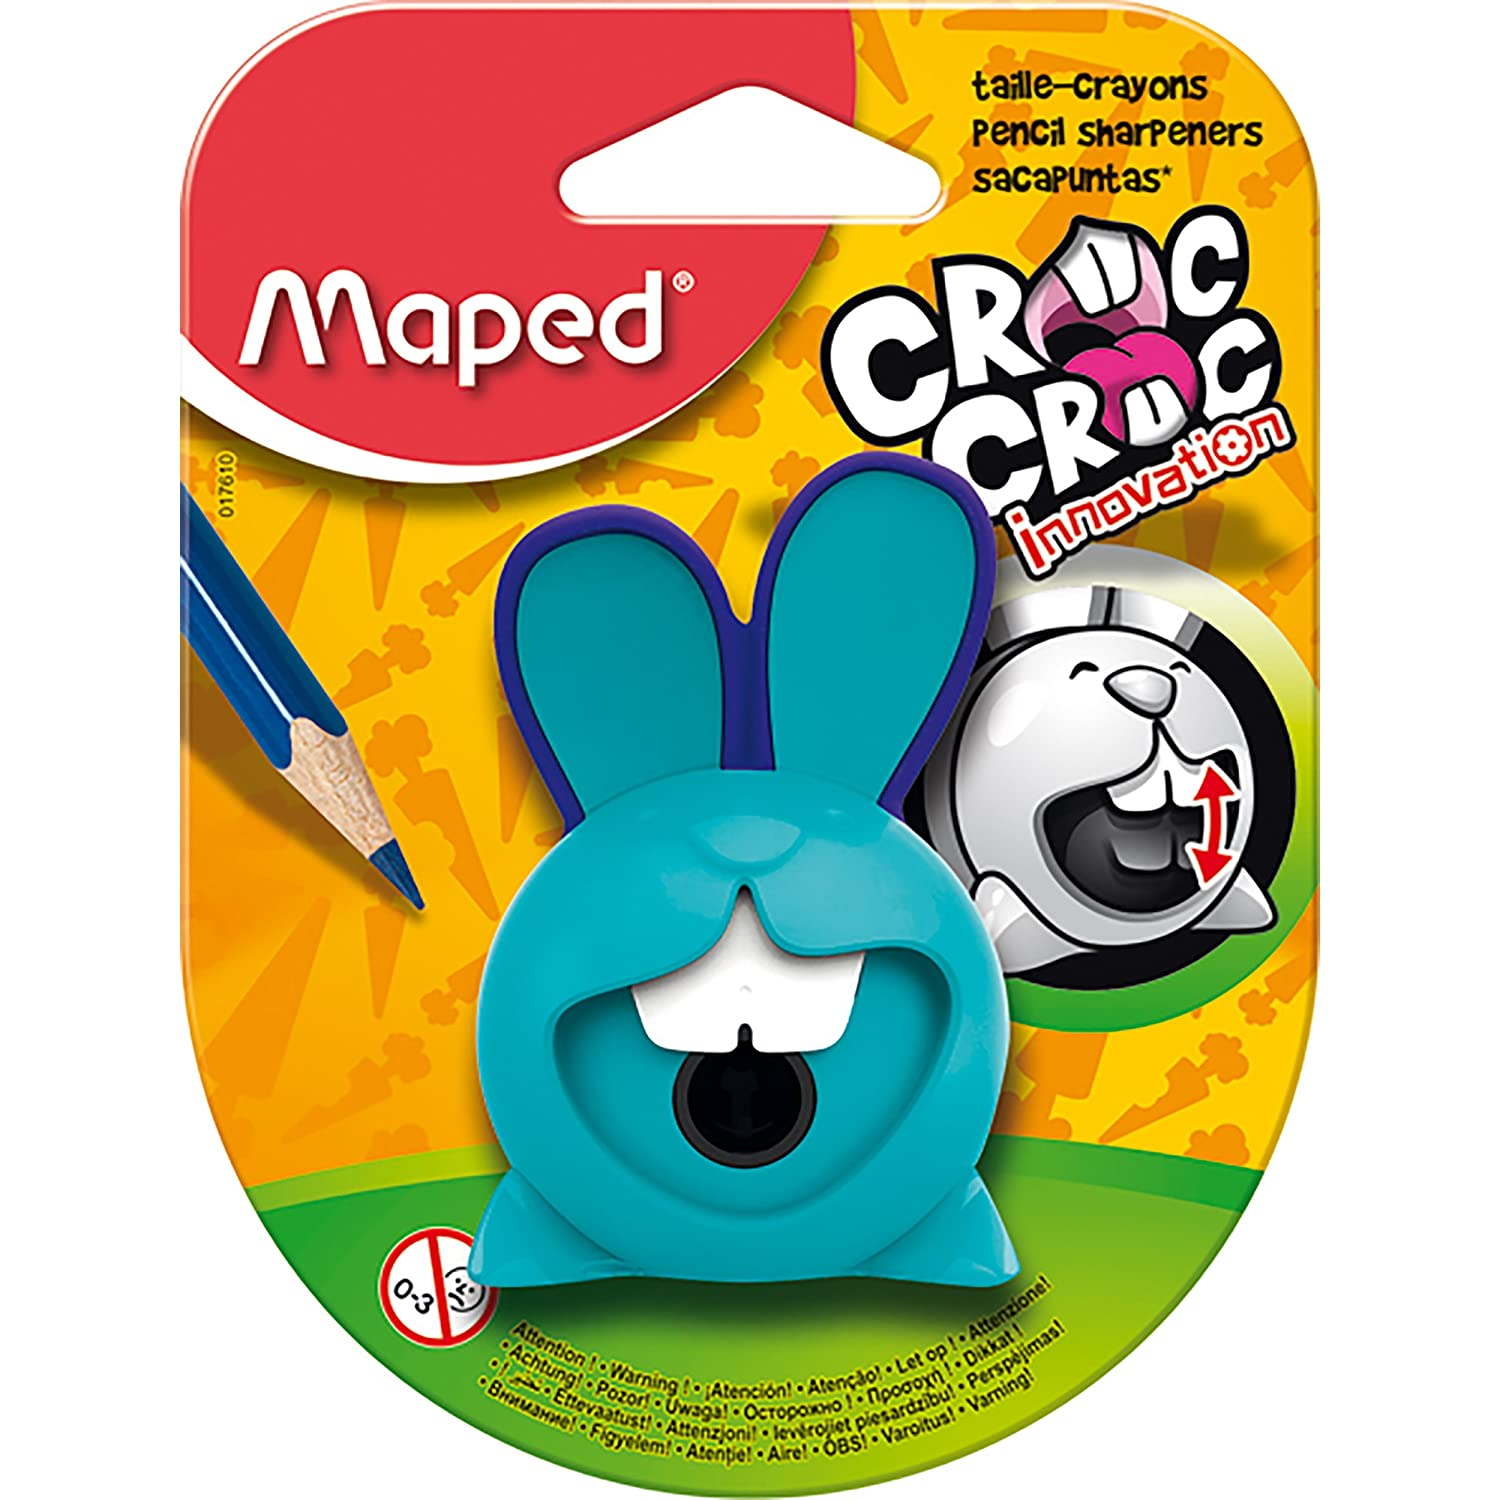 765a98993eaa Maped Croc Croc Bunny Innovation One Hole Pencil Sharpener (Assorted  Colours)  Amazon.co.uk  Office Products